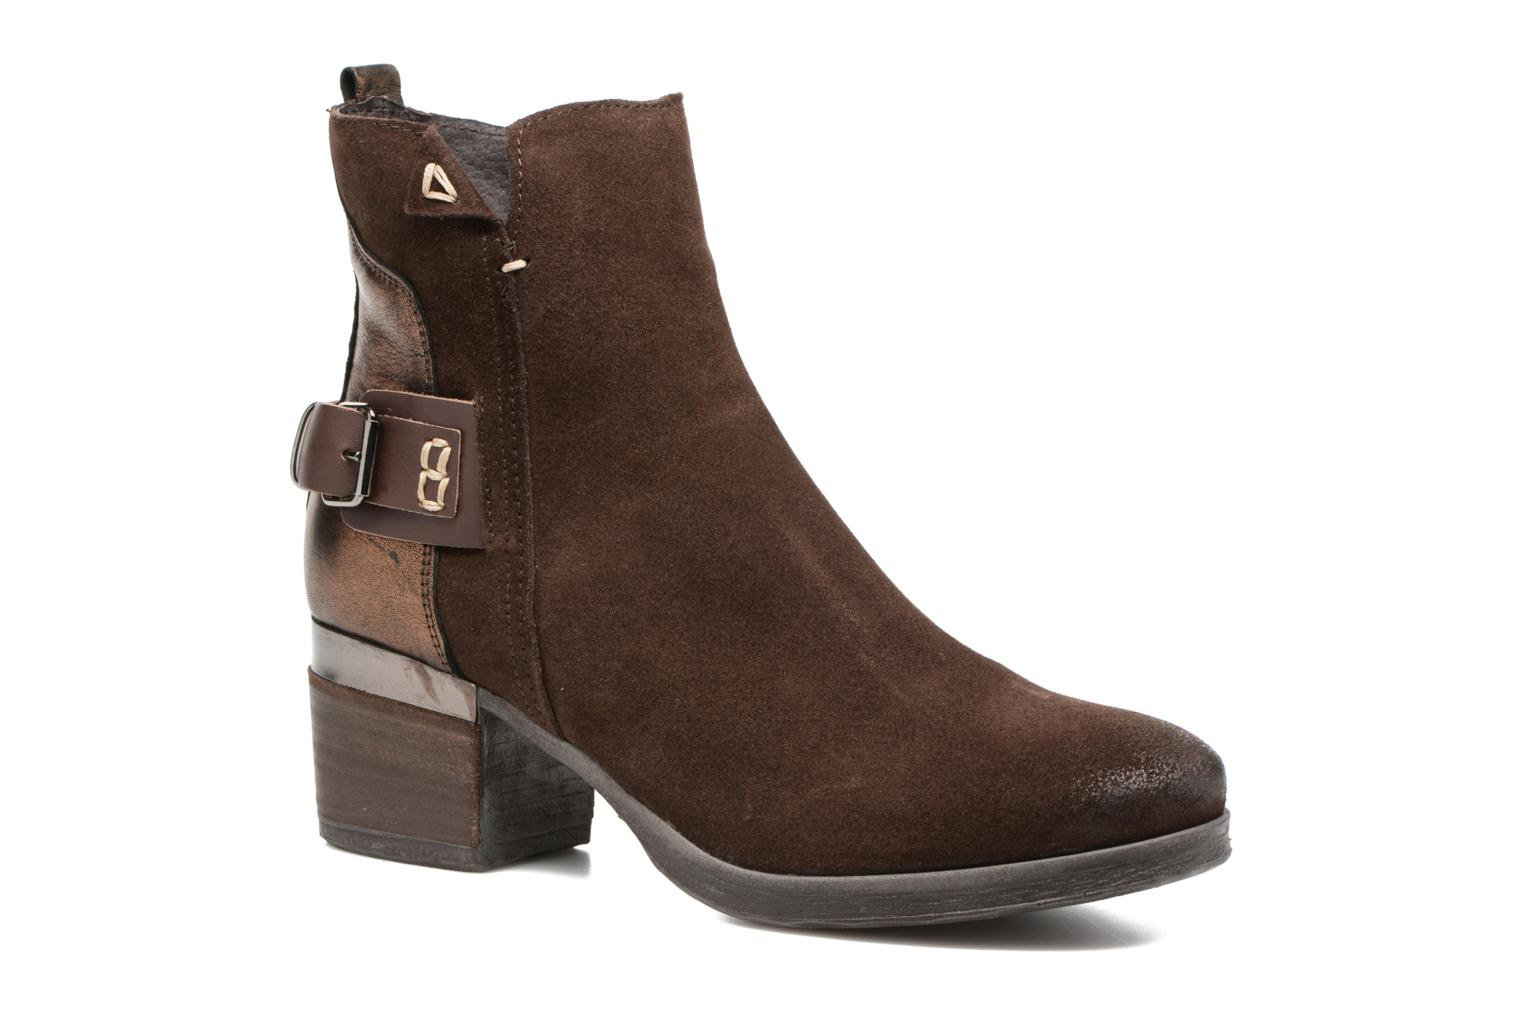 Marques Chaussure femme Khrio femme Valema velours cacao tdm